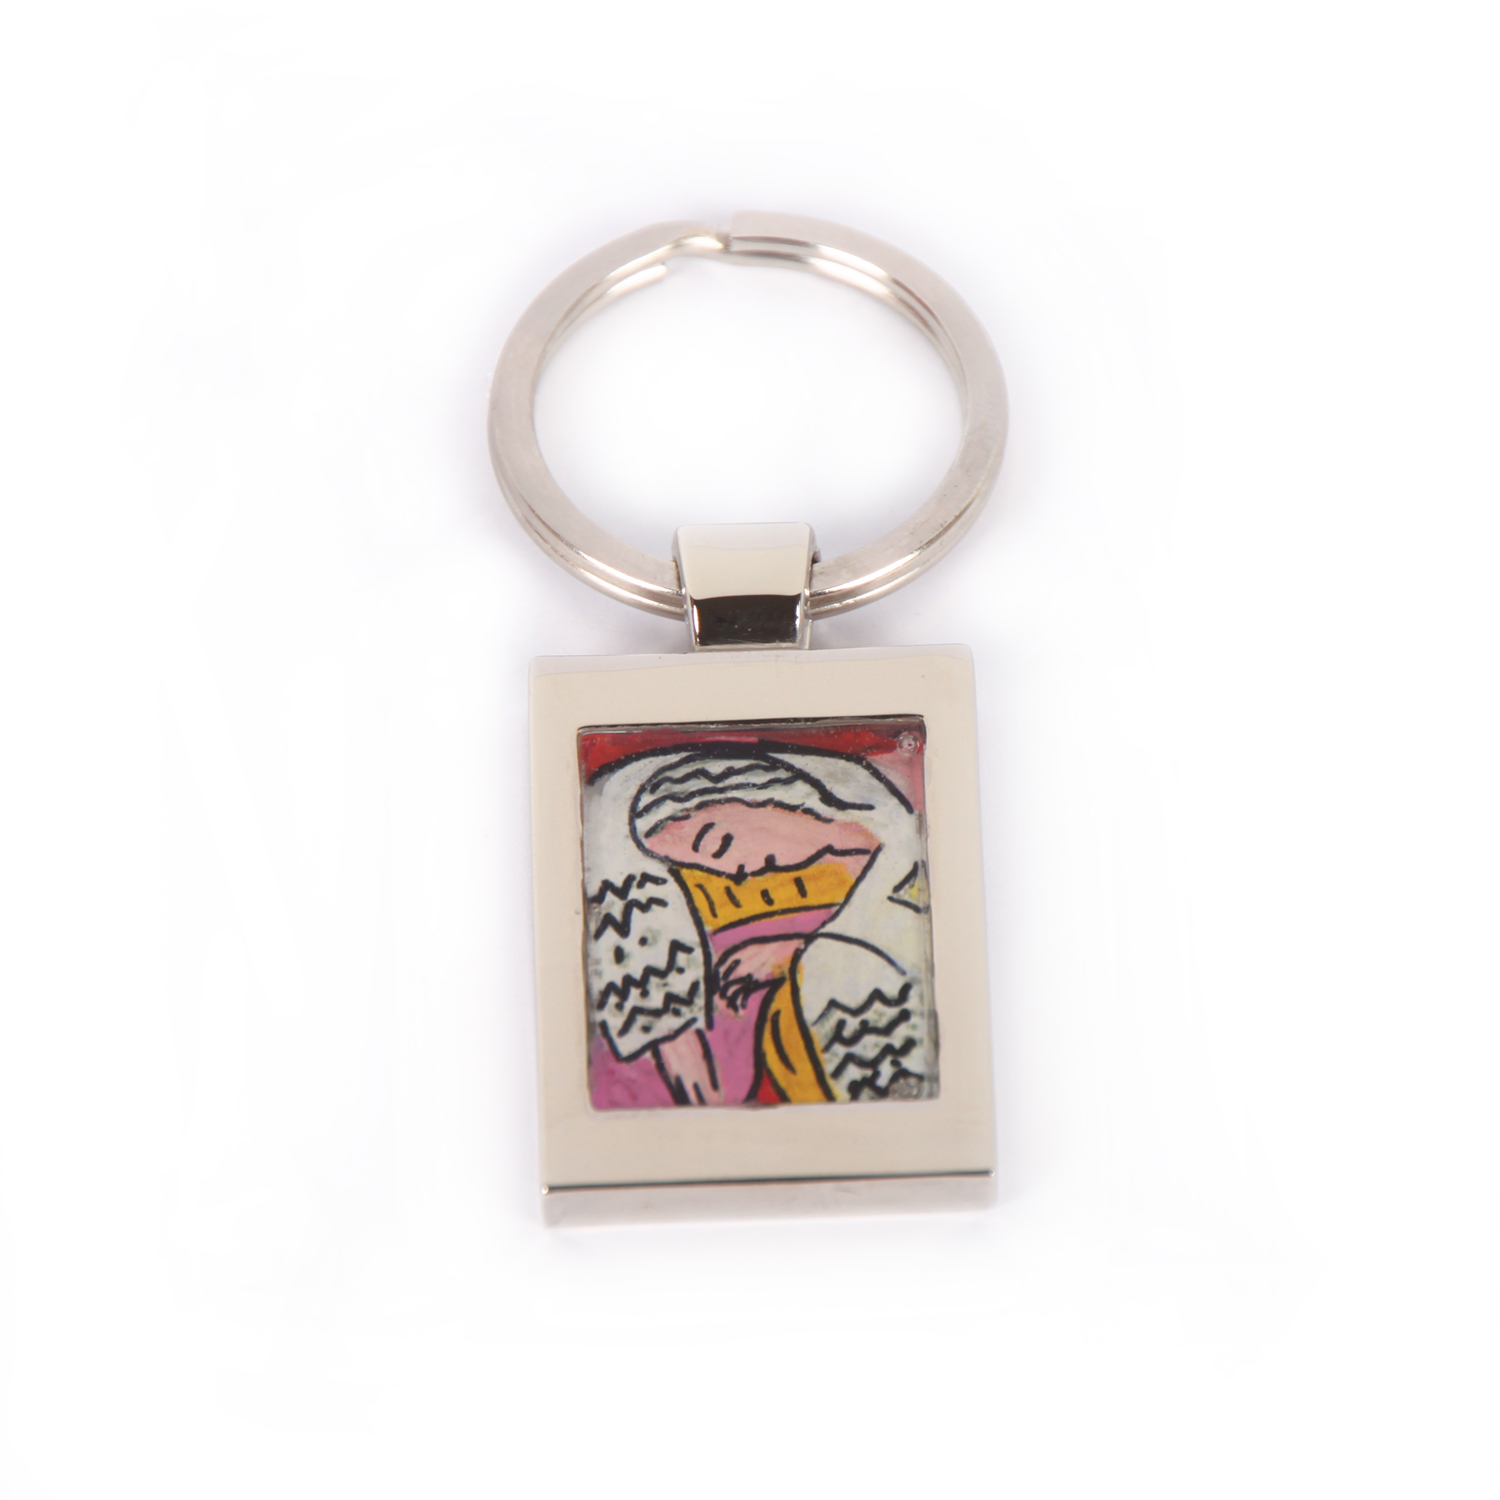 Hand painted keychain - The dream by Matisse